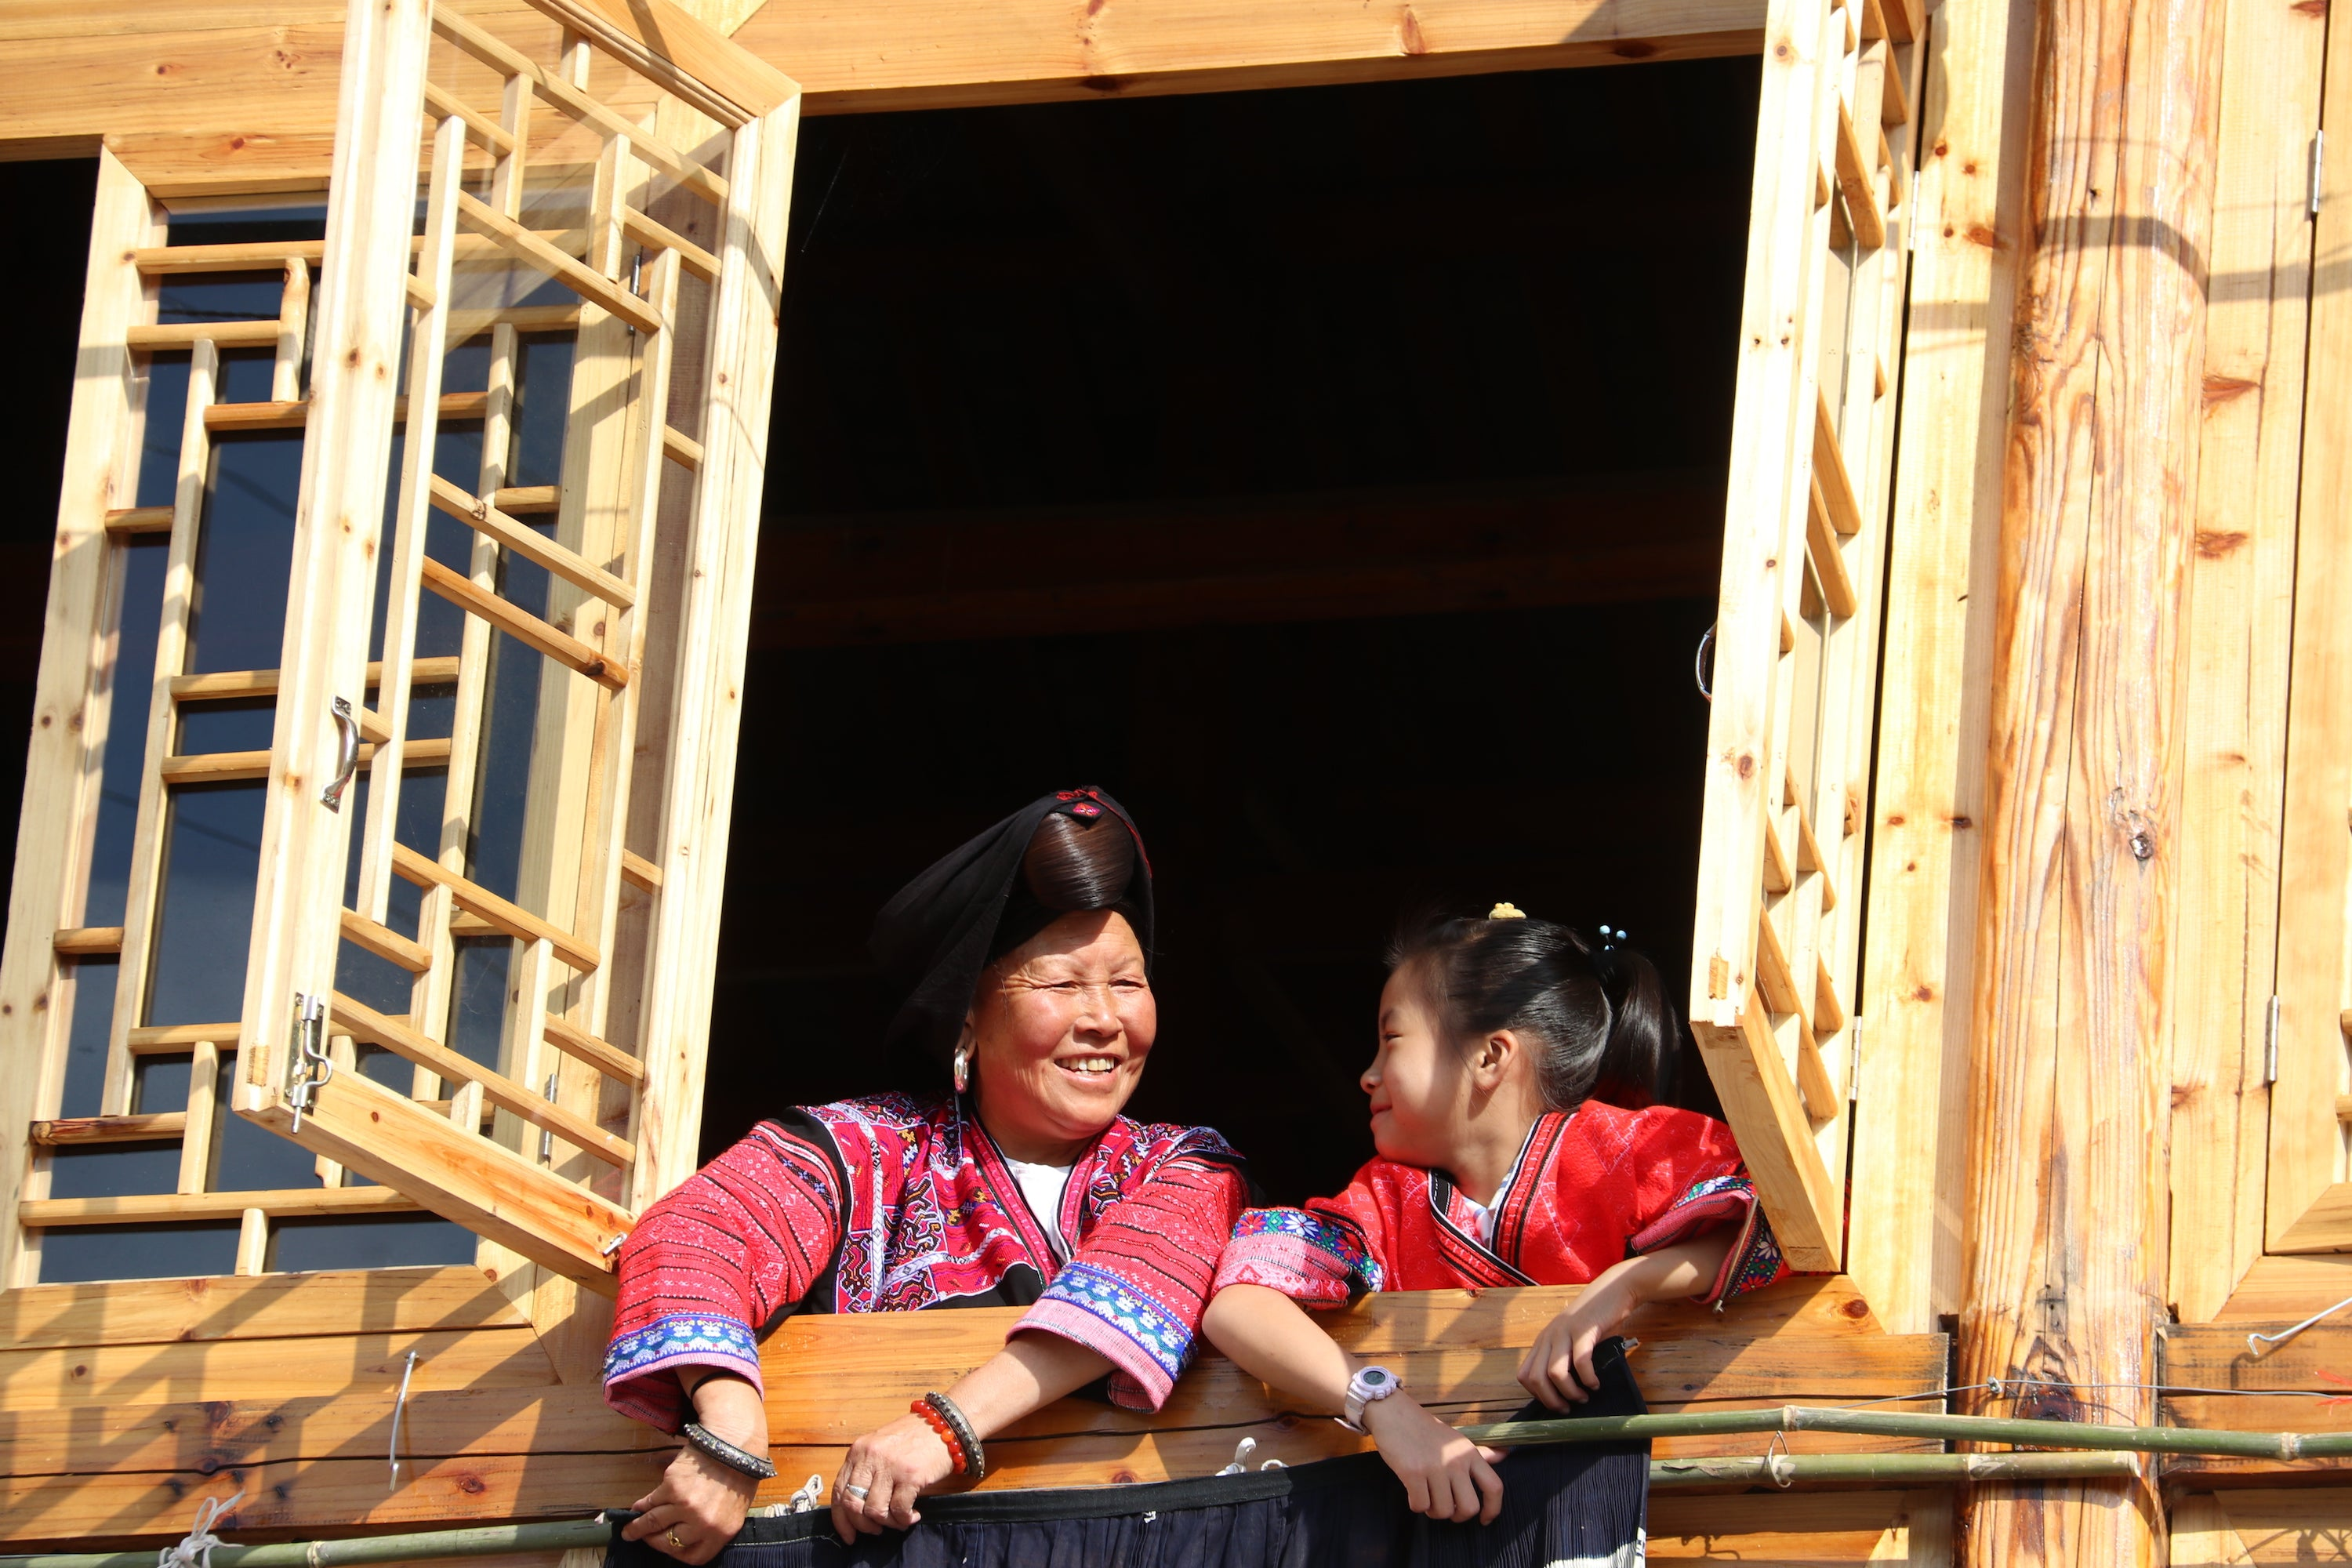 The Red Yao at their annual 'Clothes Hanging' festival.